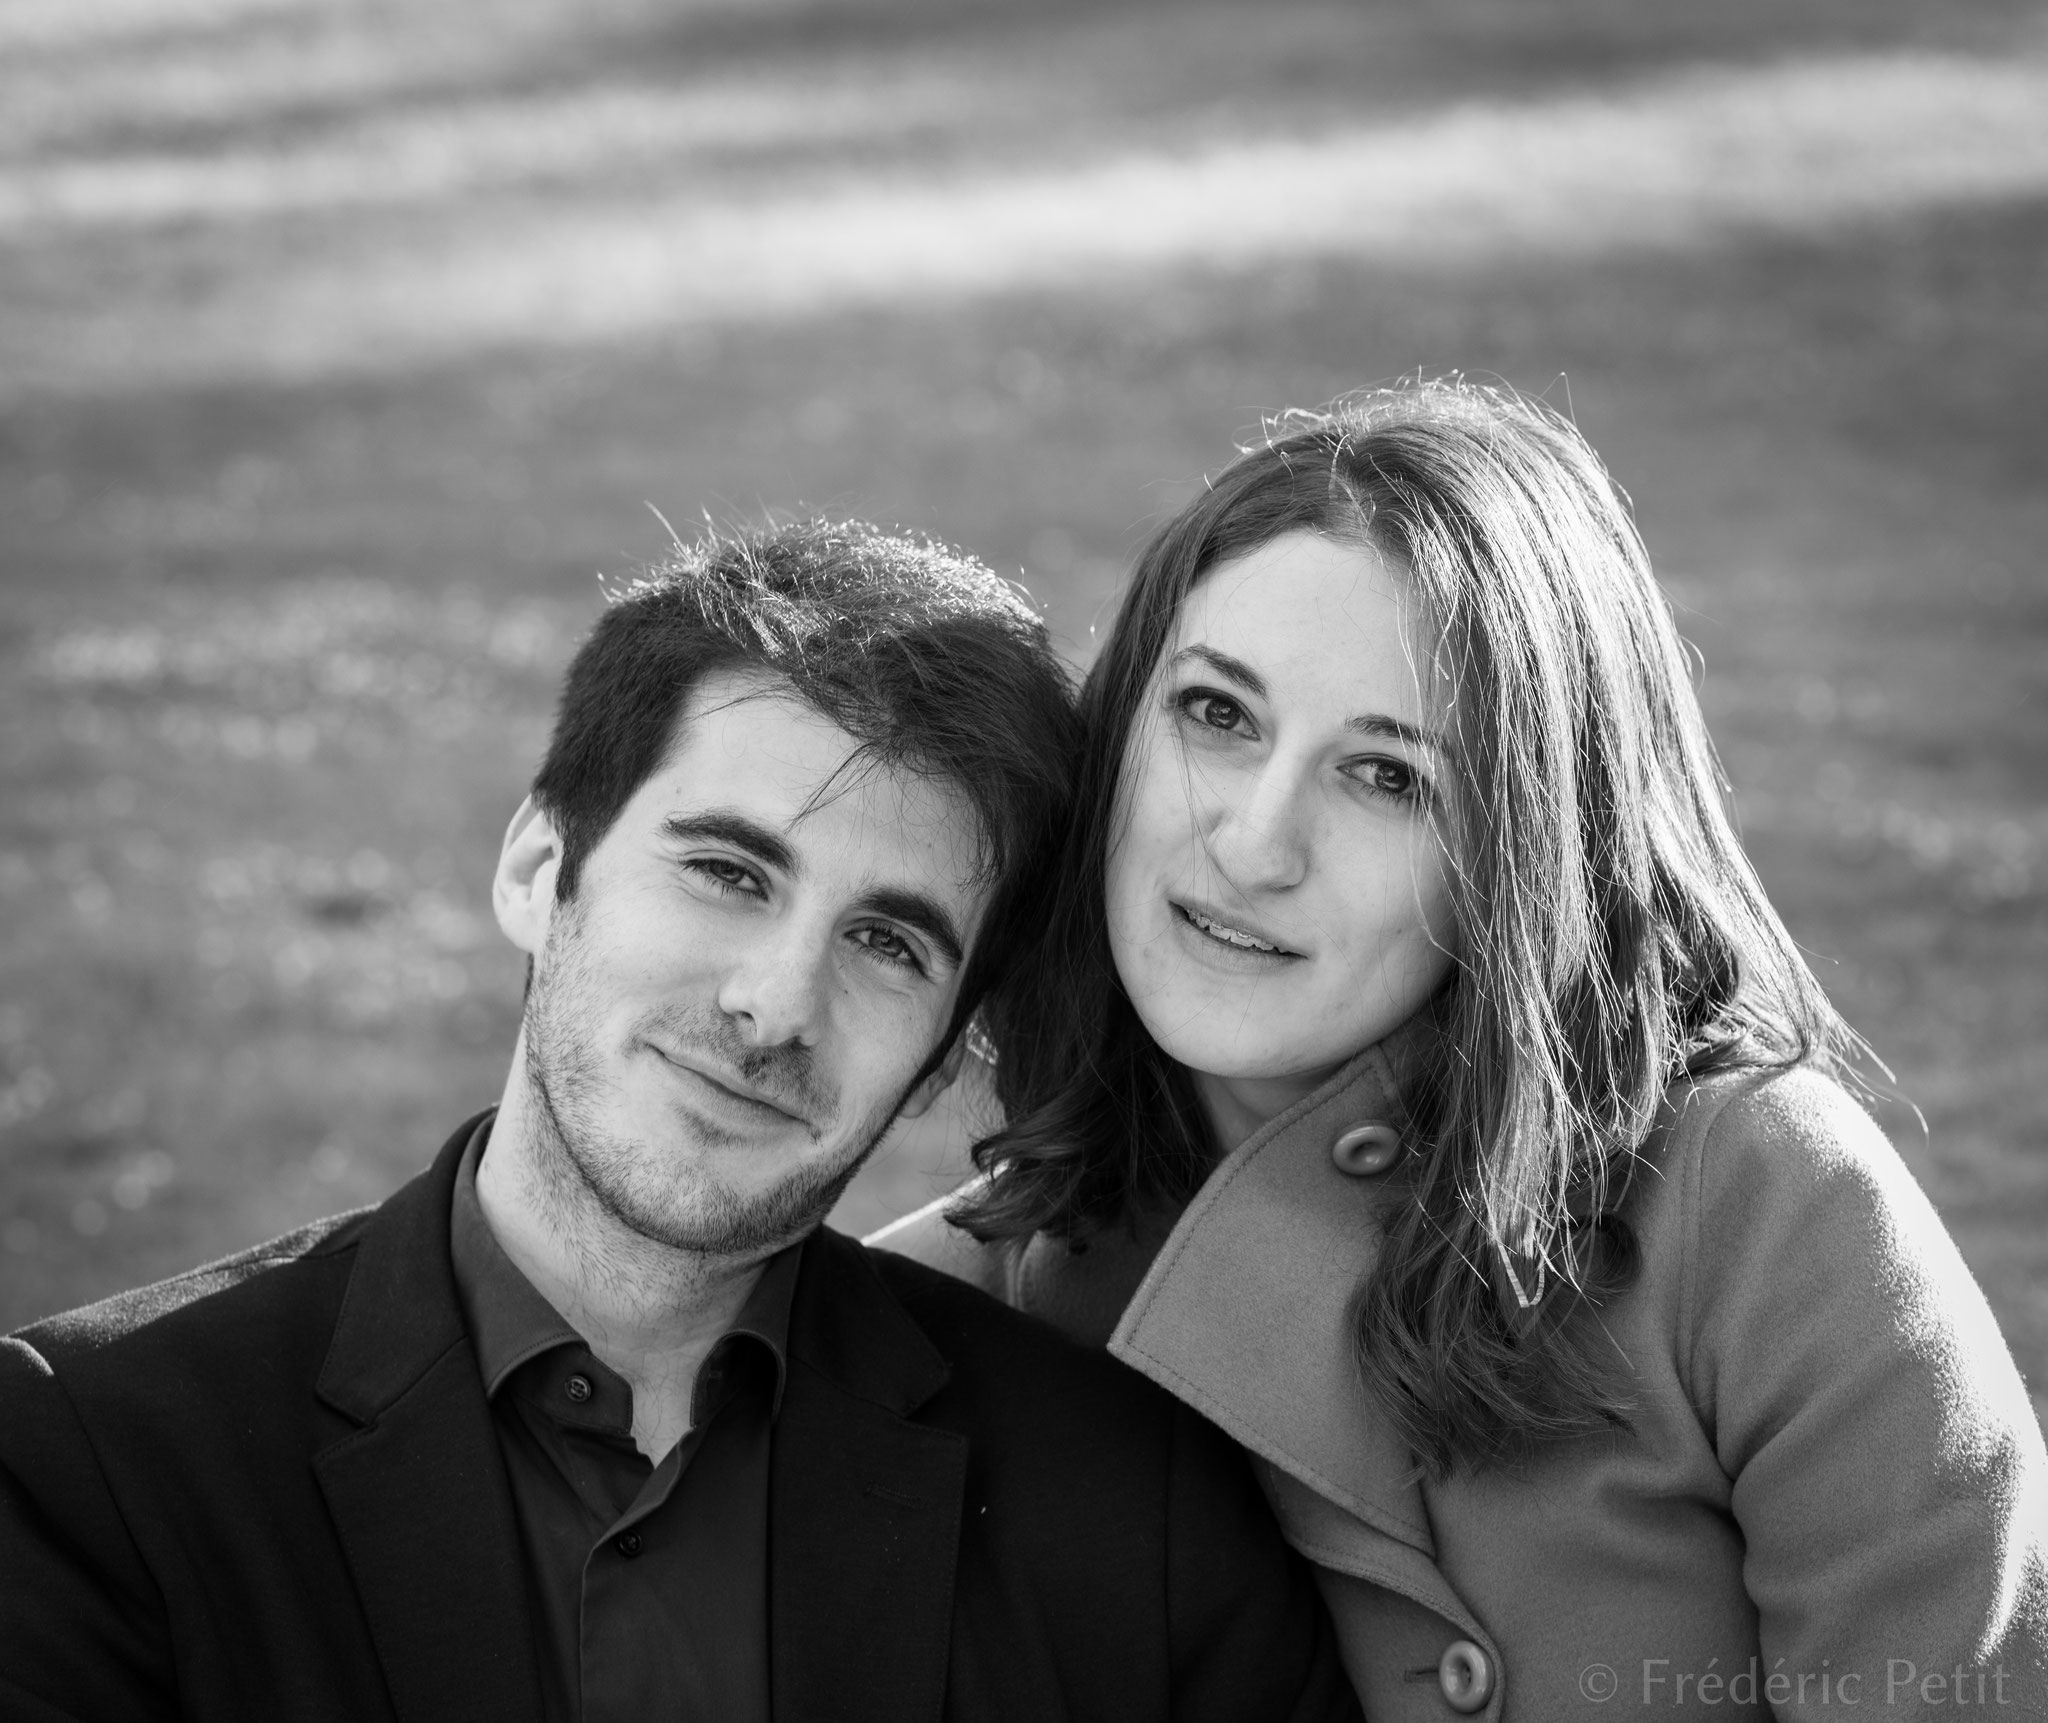 25 avril 2018 - Anne-Sophie & Francesco